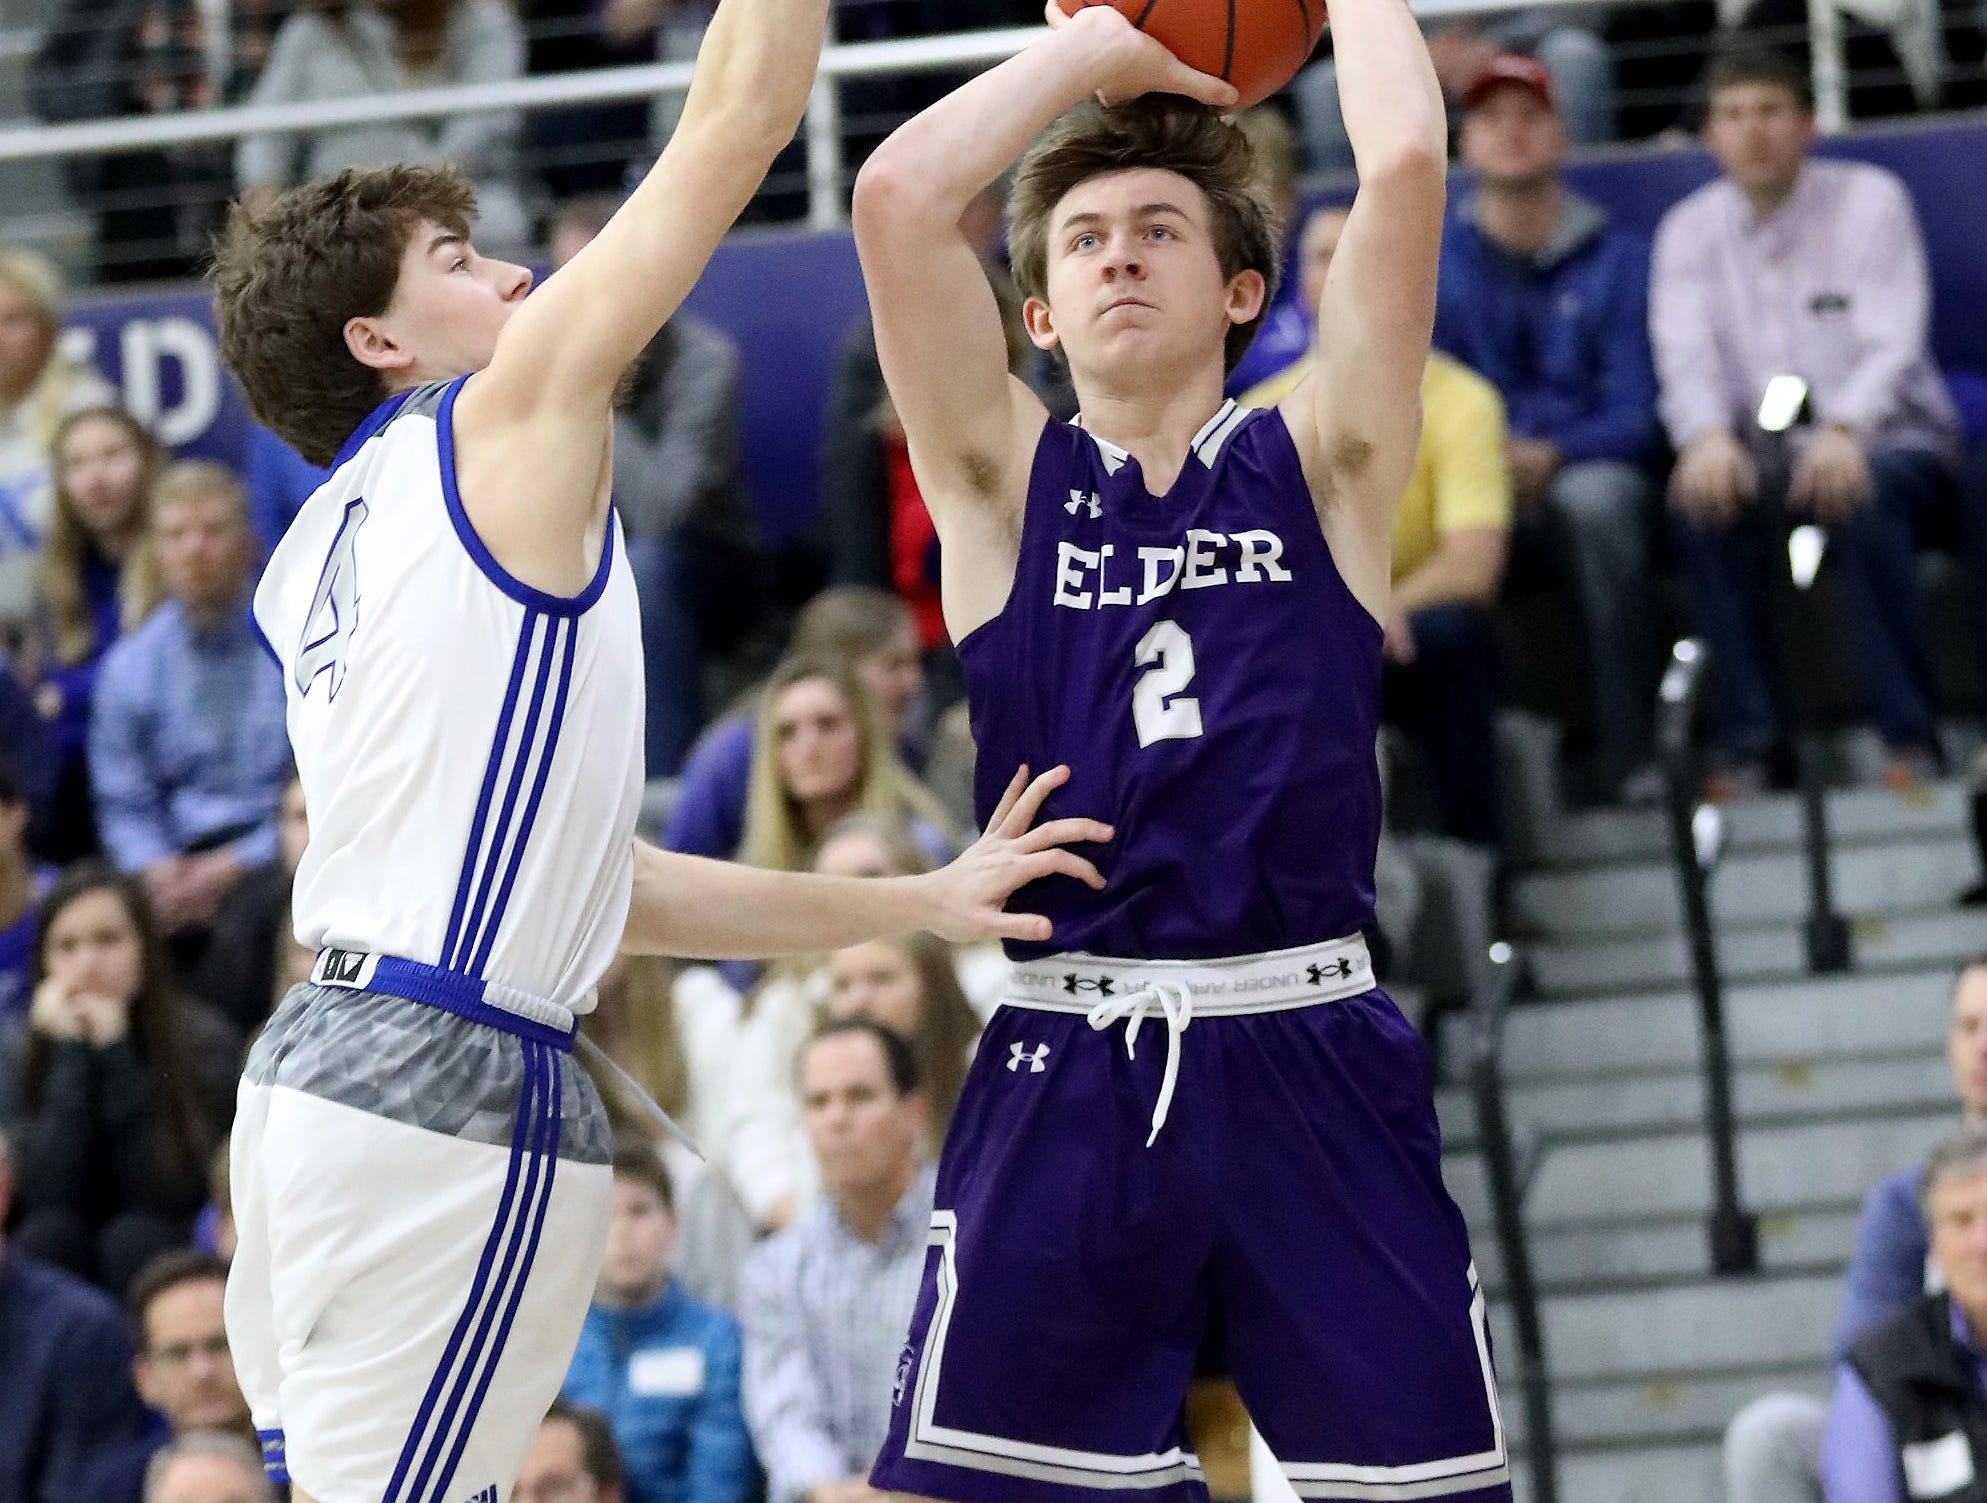 Elder guard Aiden Byrne (2) shoots the ball over St. Xavier guard Nick Frank during their basketball game Friday, Feb. 1, 2019. He scored a team-high 12 points in the 51-36 win.